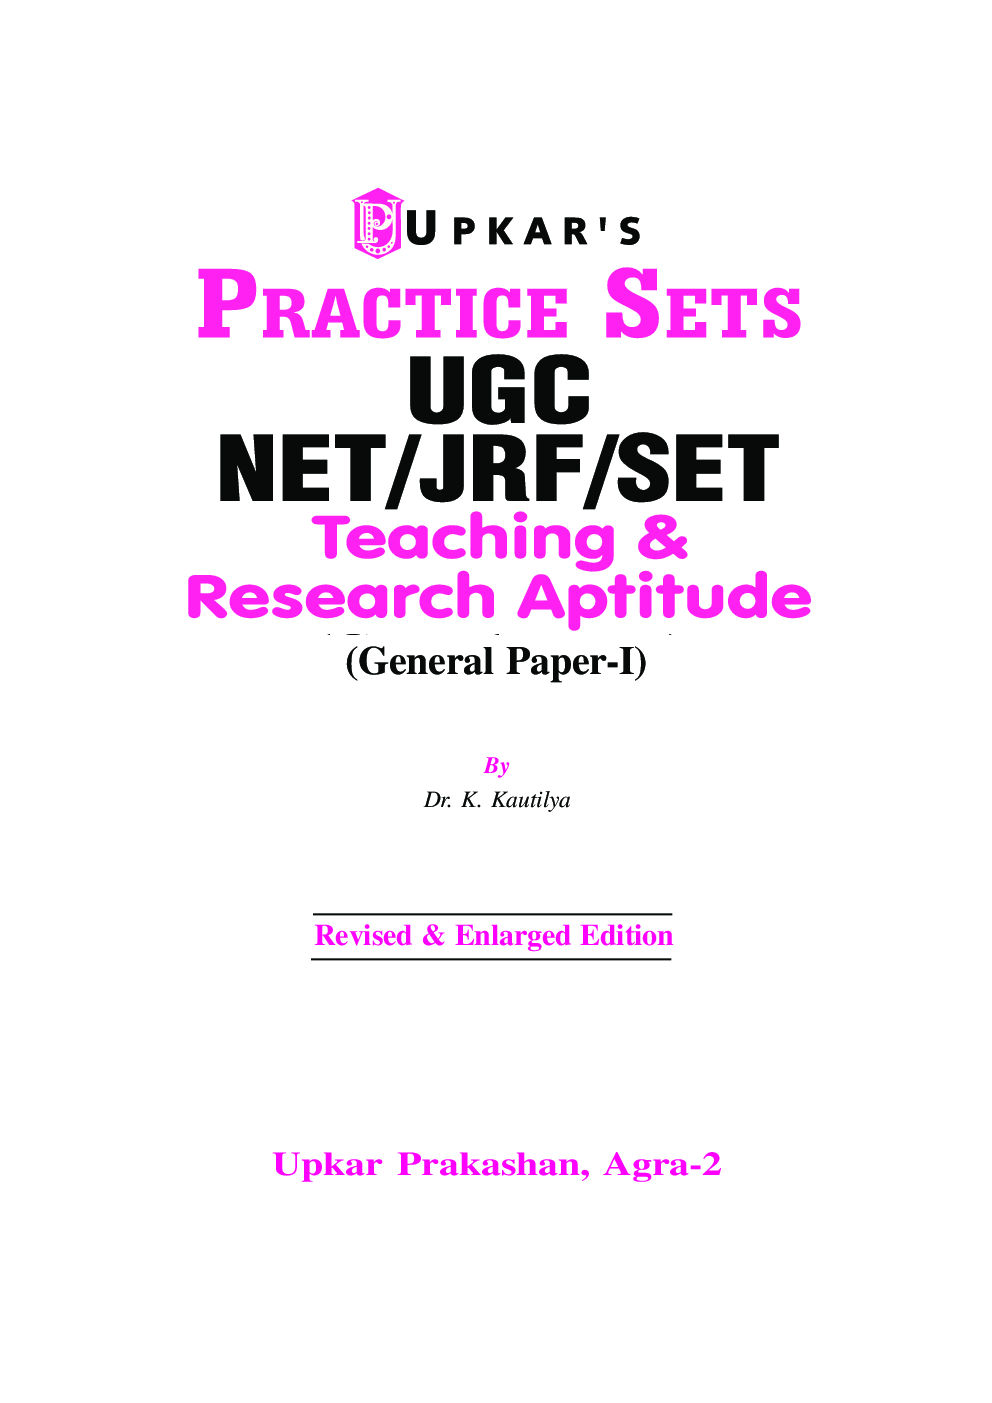 UGC NET /JRF /SET Practice Sets Teaching And Research Aptitude (General Paper-I) Revised Edition - Page 2